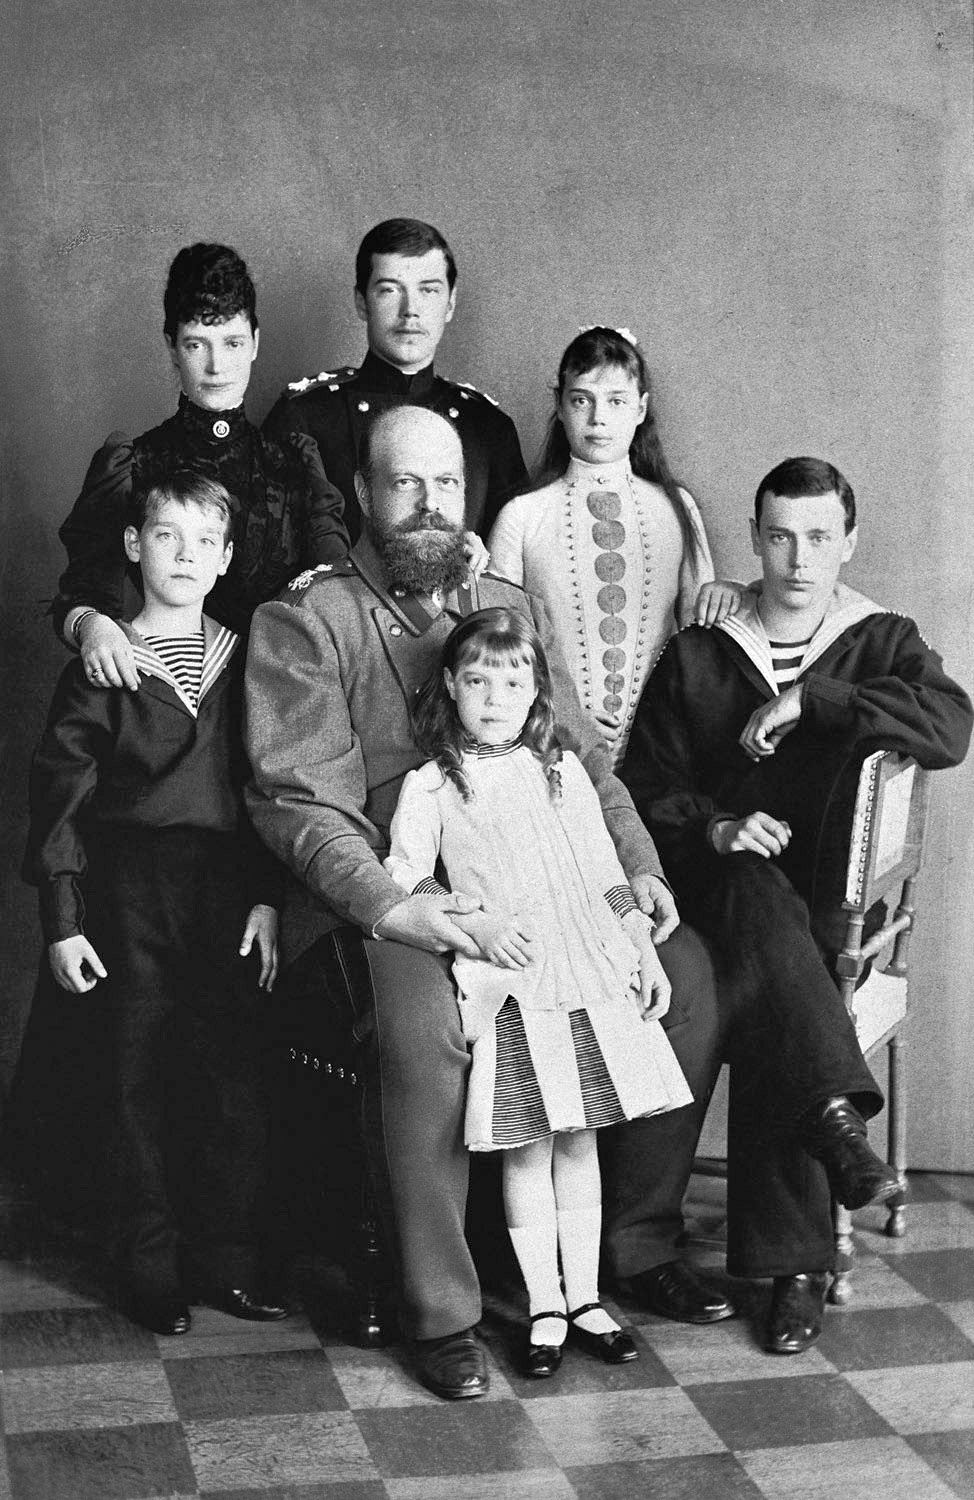 Body Of Russian Tsar Alexander III To Be Exhumed As Part